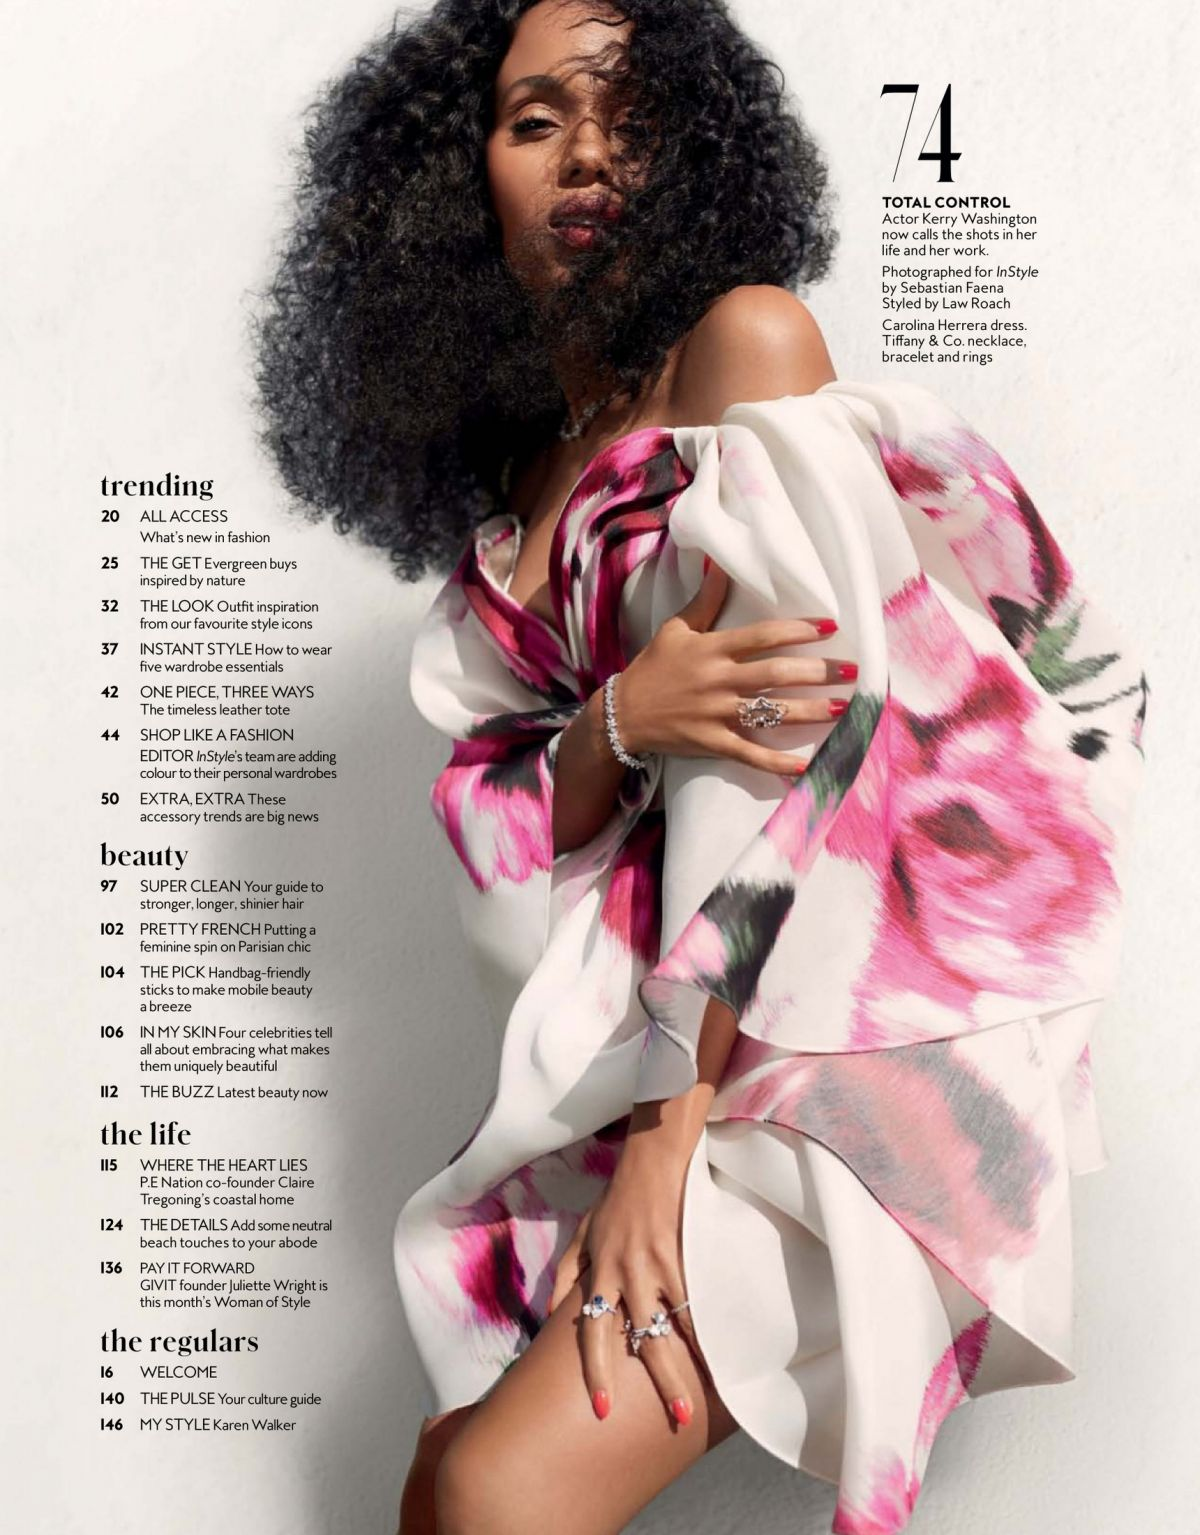 Kerry Washington Looks Back At Her Past InStyle Covers